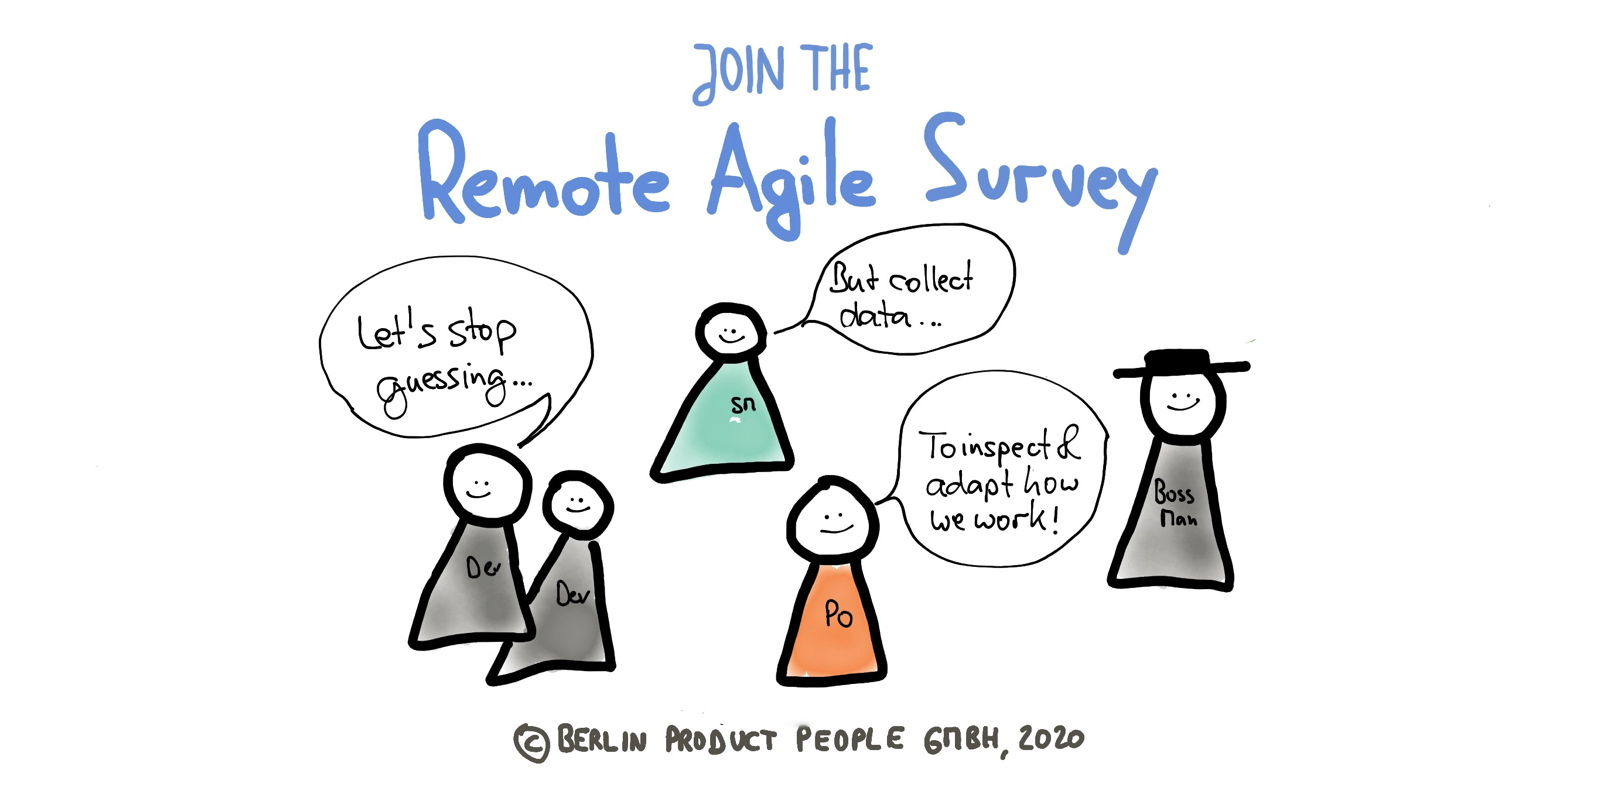 Remote Agile Survey — Let's Stop Guessing, Join the Study